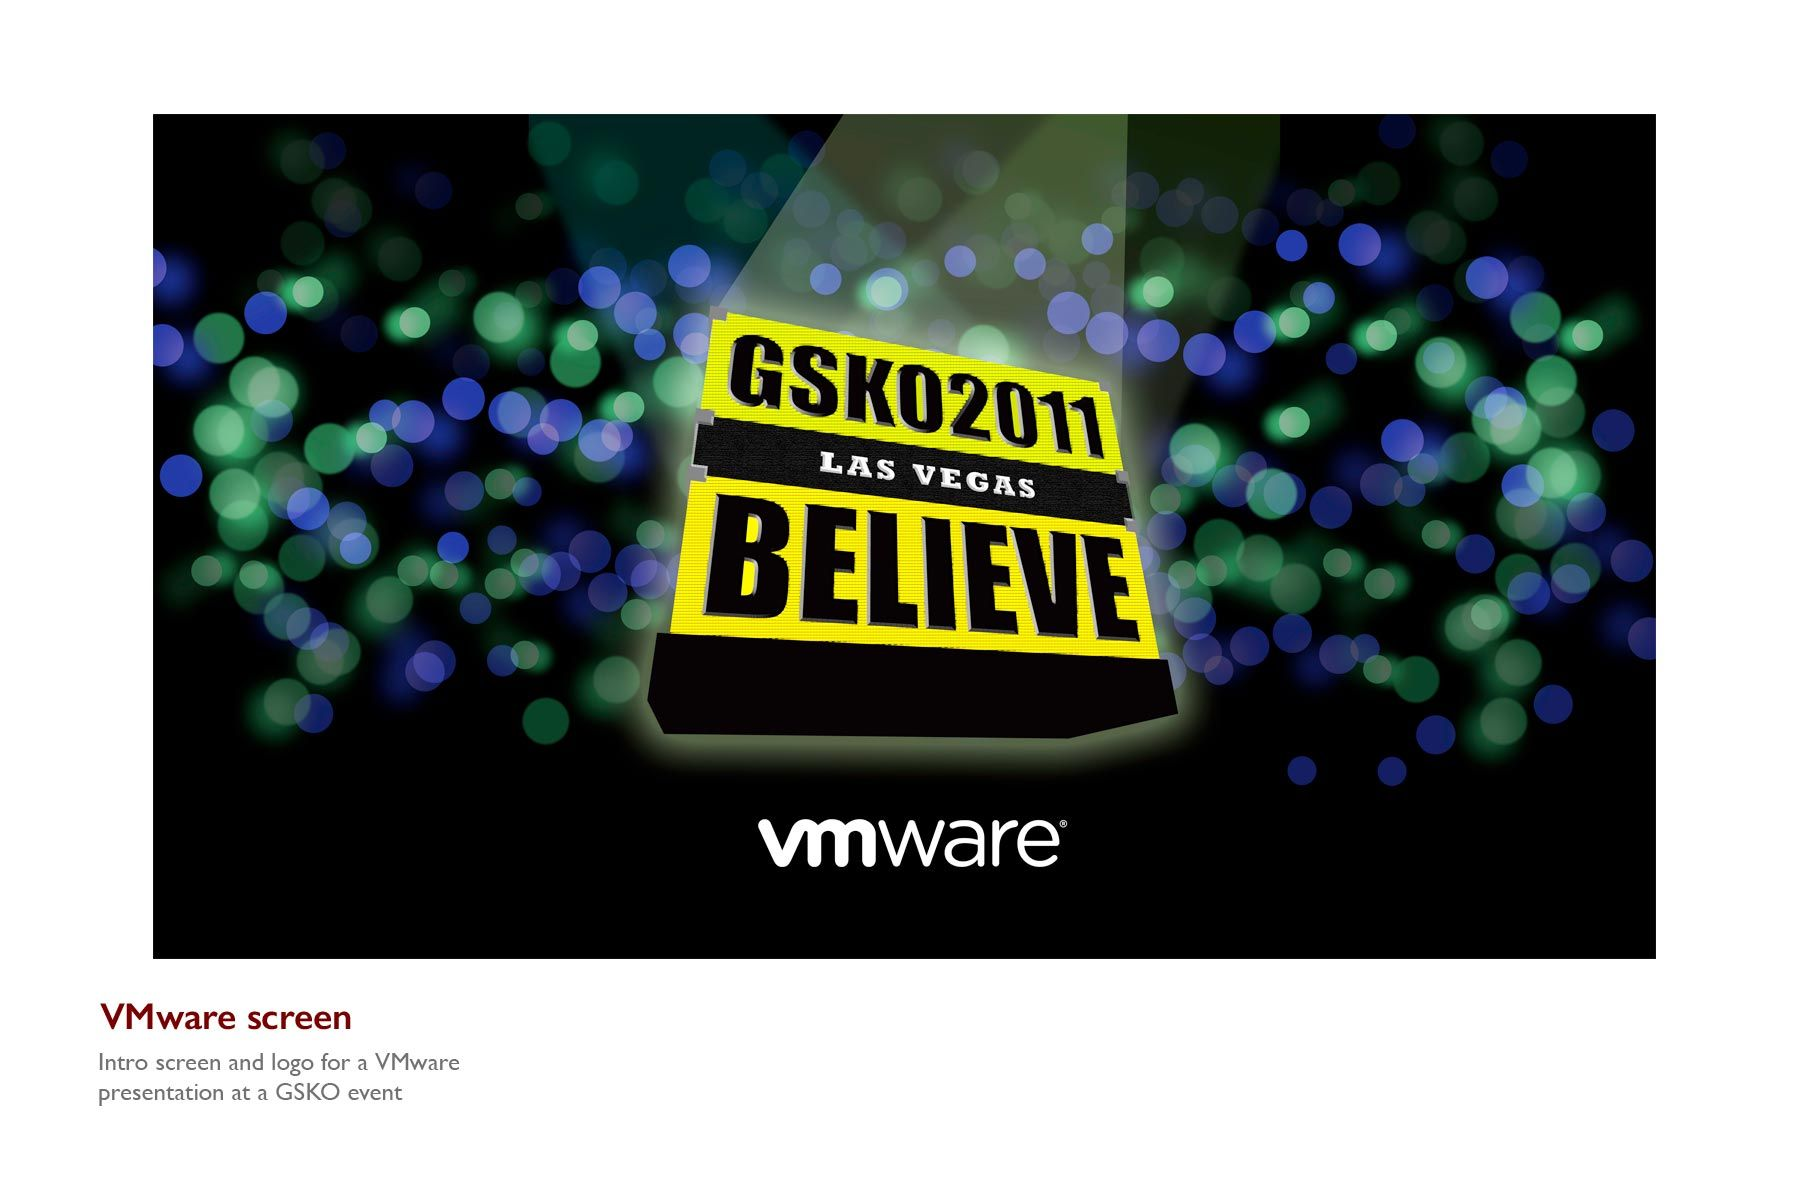 VMware Event Screen